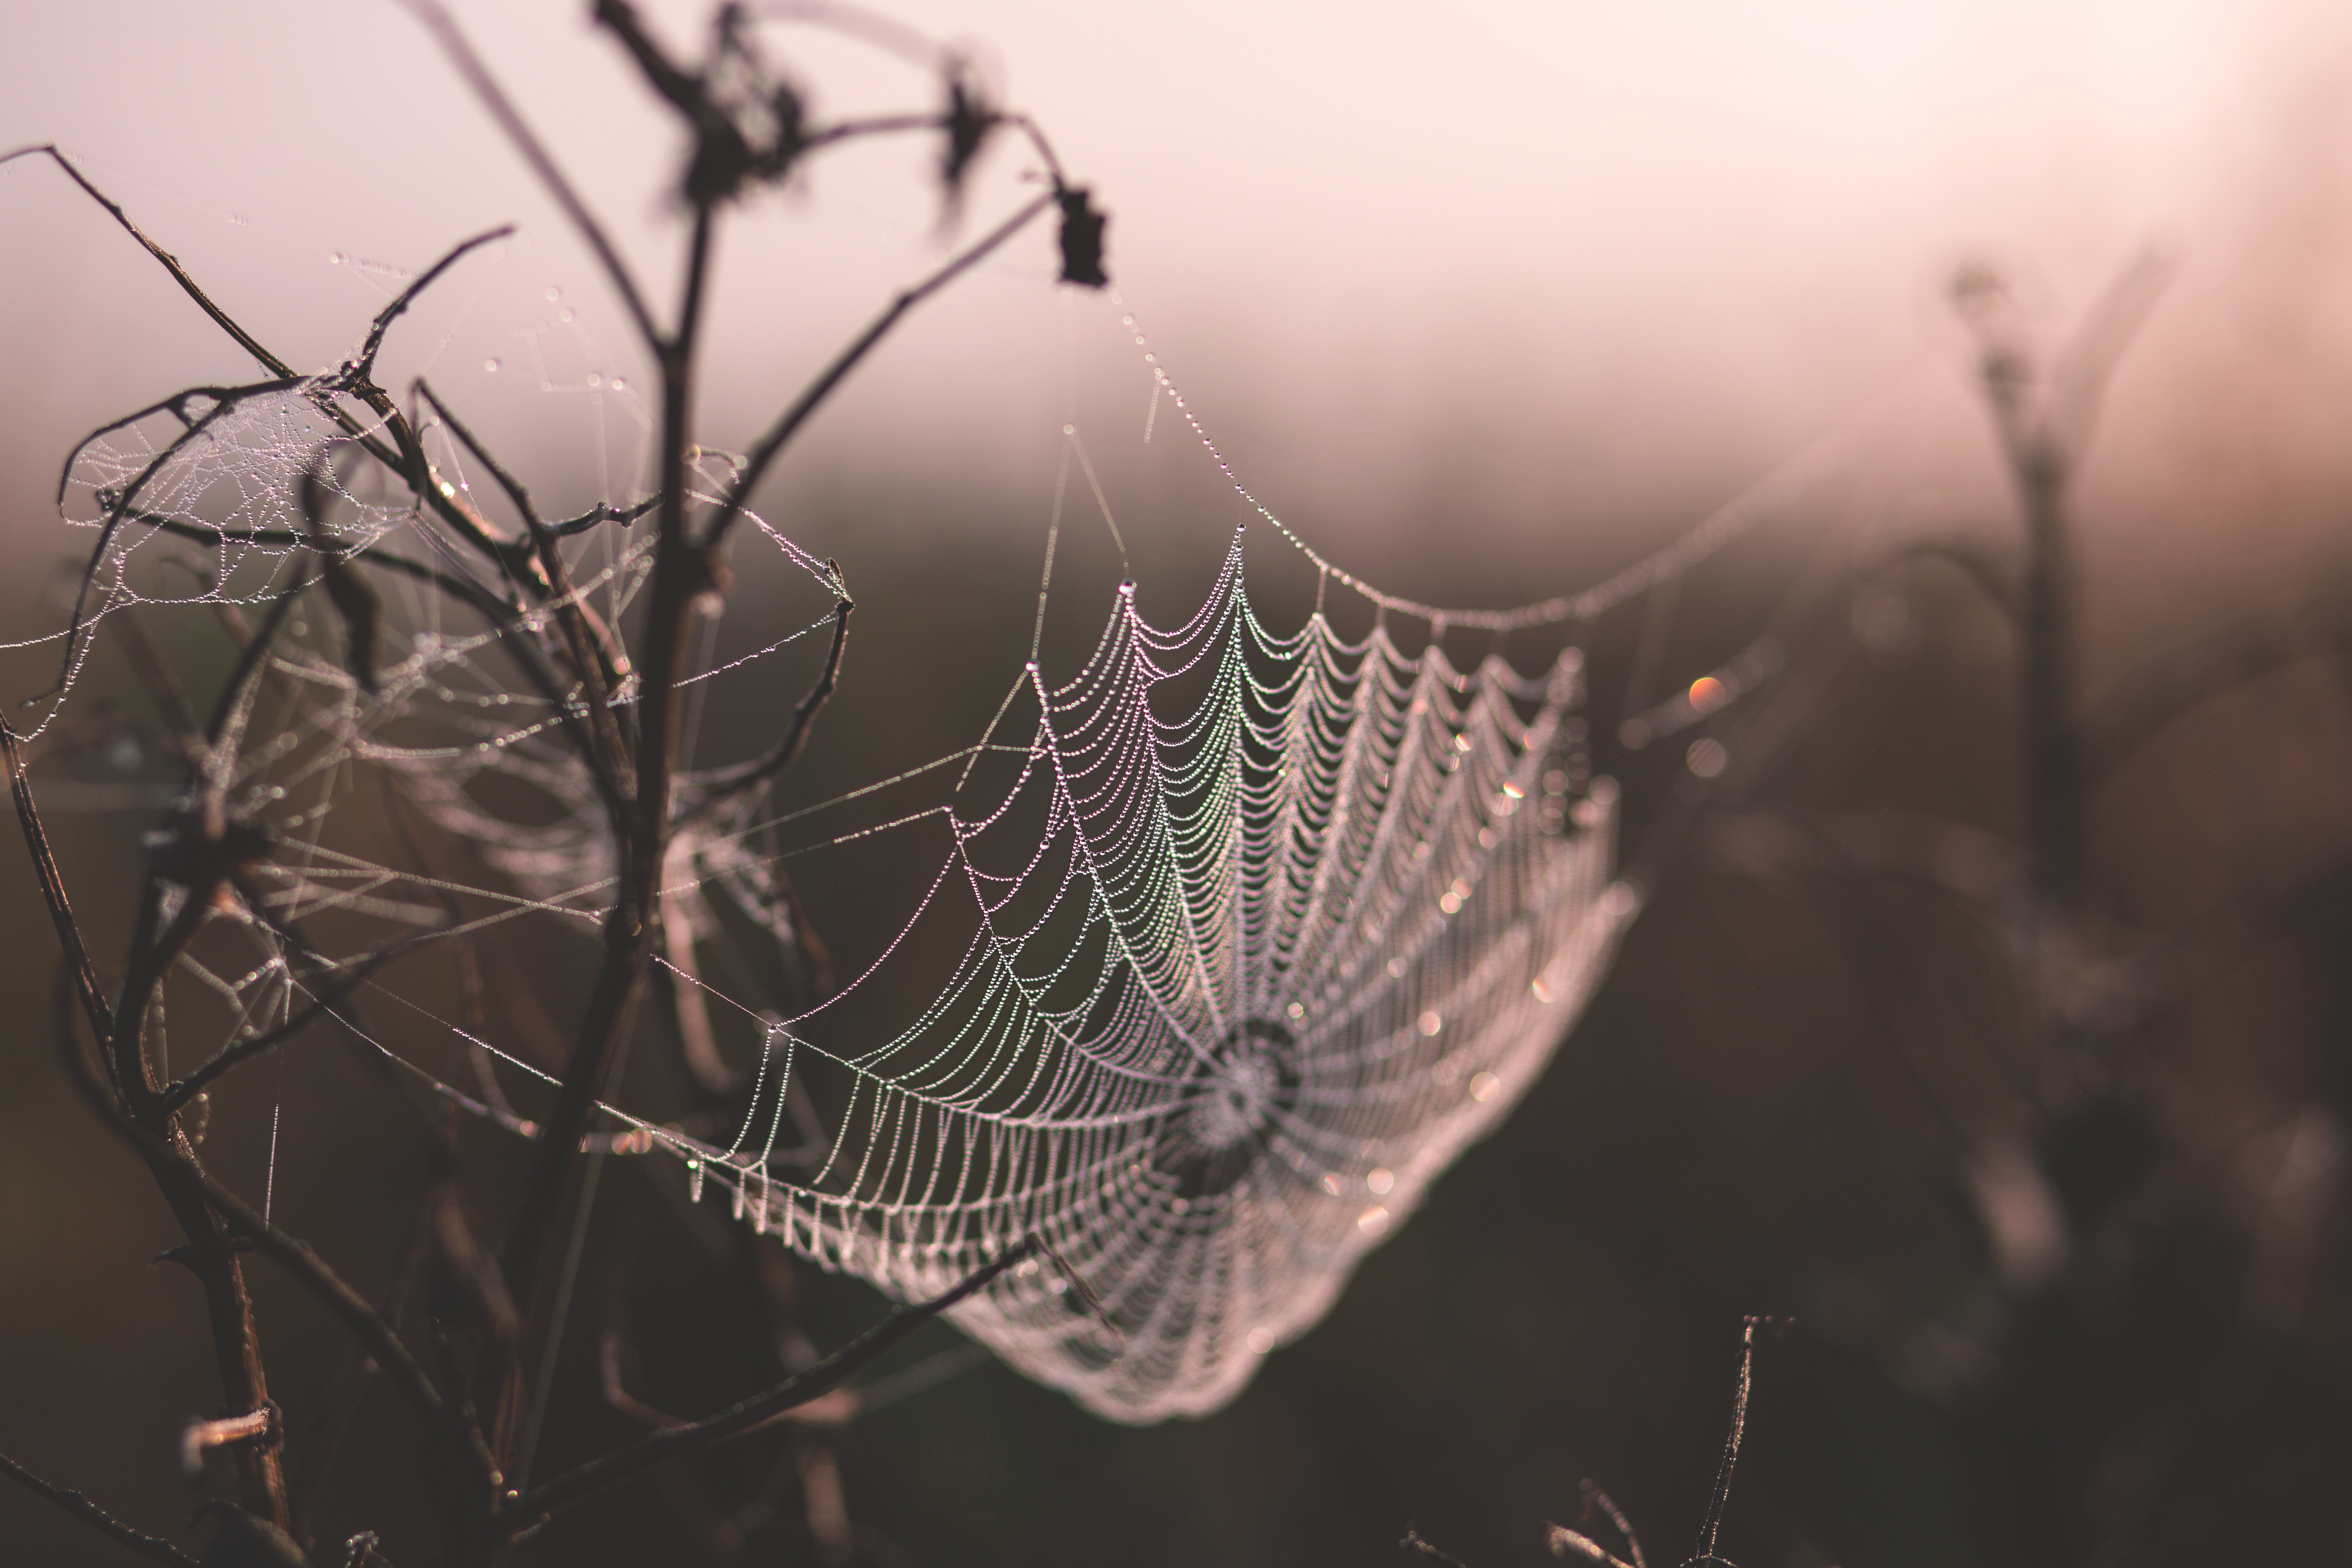 Dew on a spider's web, Backgrounds, Reflection, Web, Water, HQ Photo